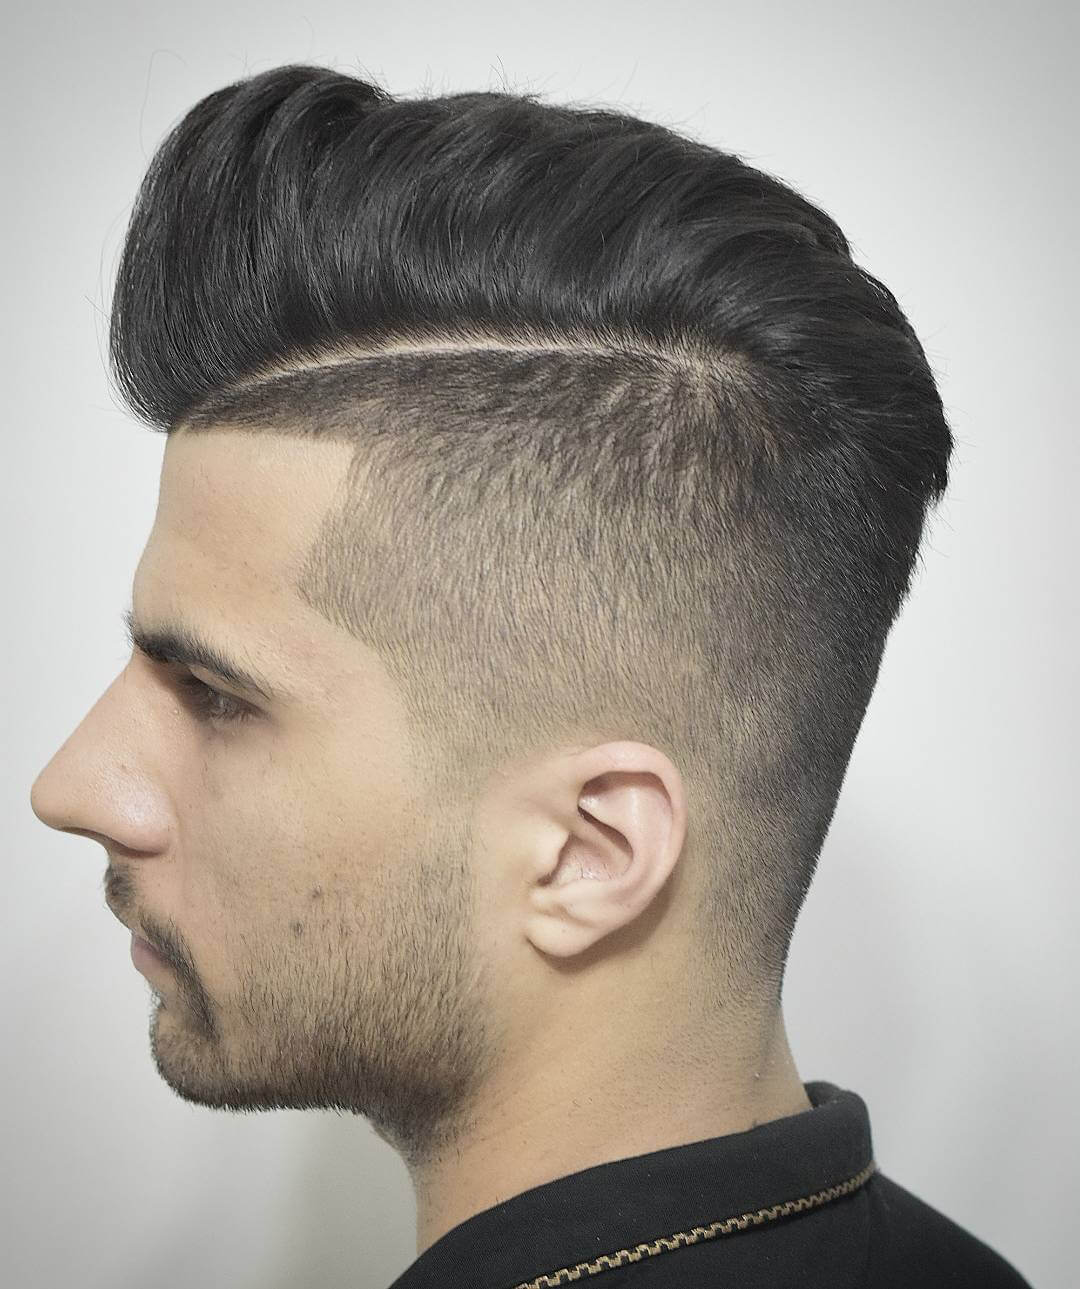 Top 10 All-Time Hair Trends For Men